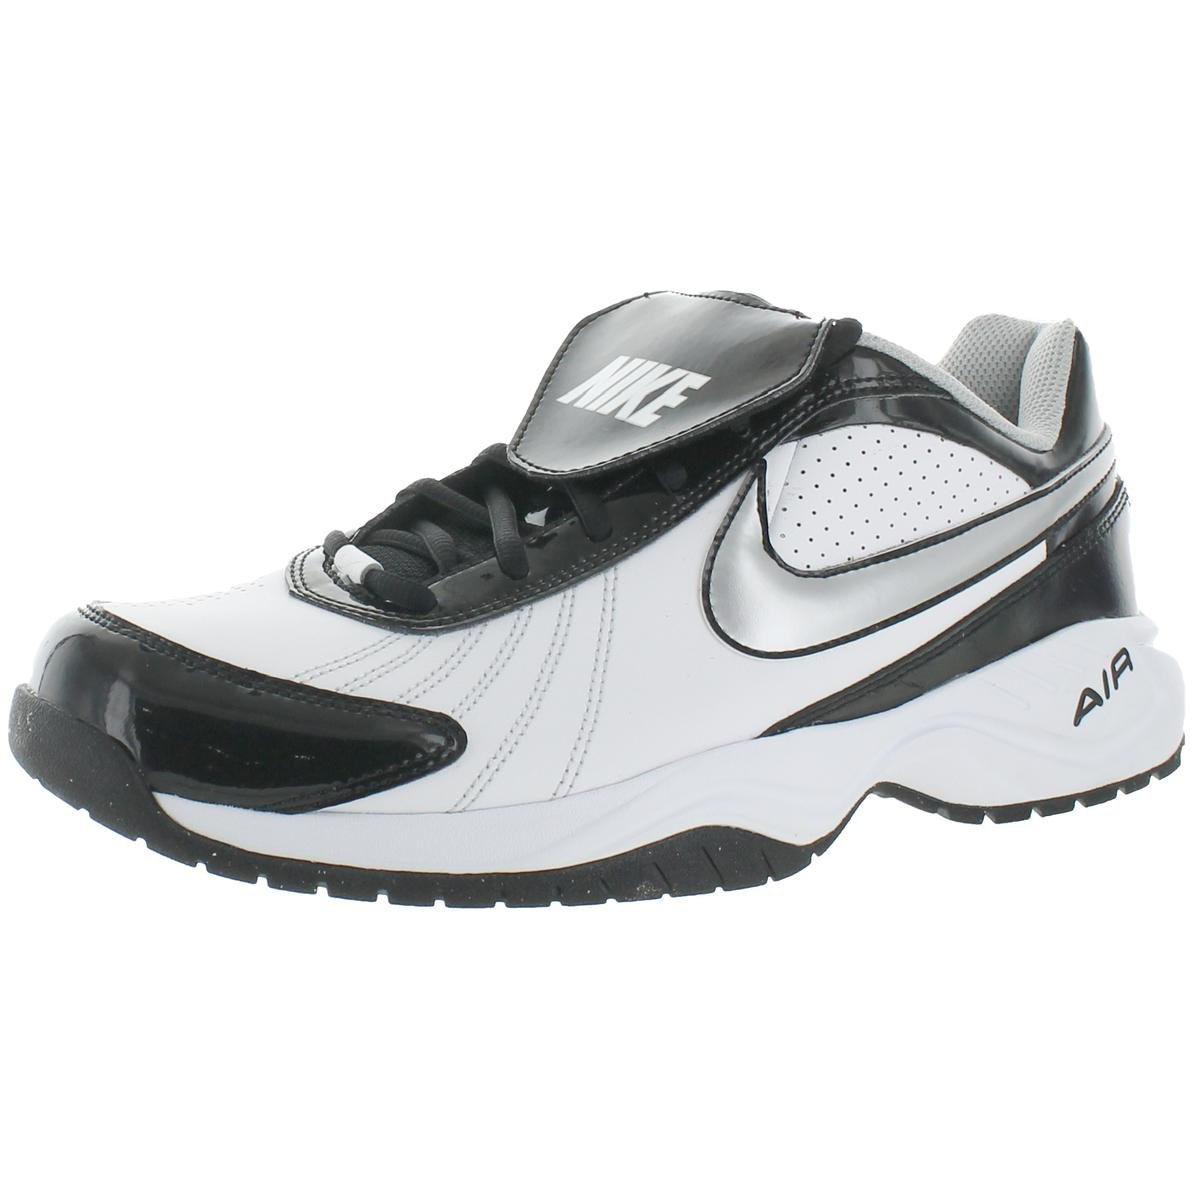 Nike Air Diamond Trainer Mens Faux Leather Baseball Trainer Shoe White Size 11.5